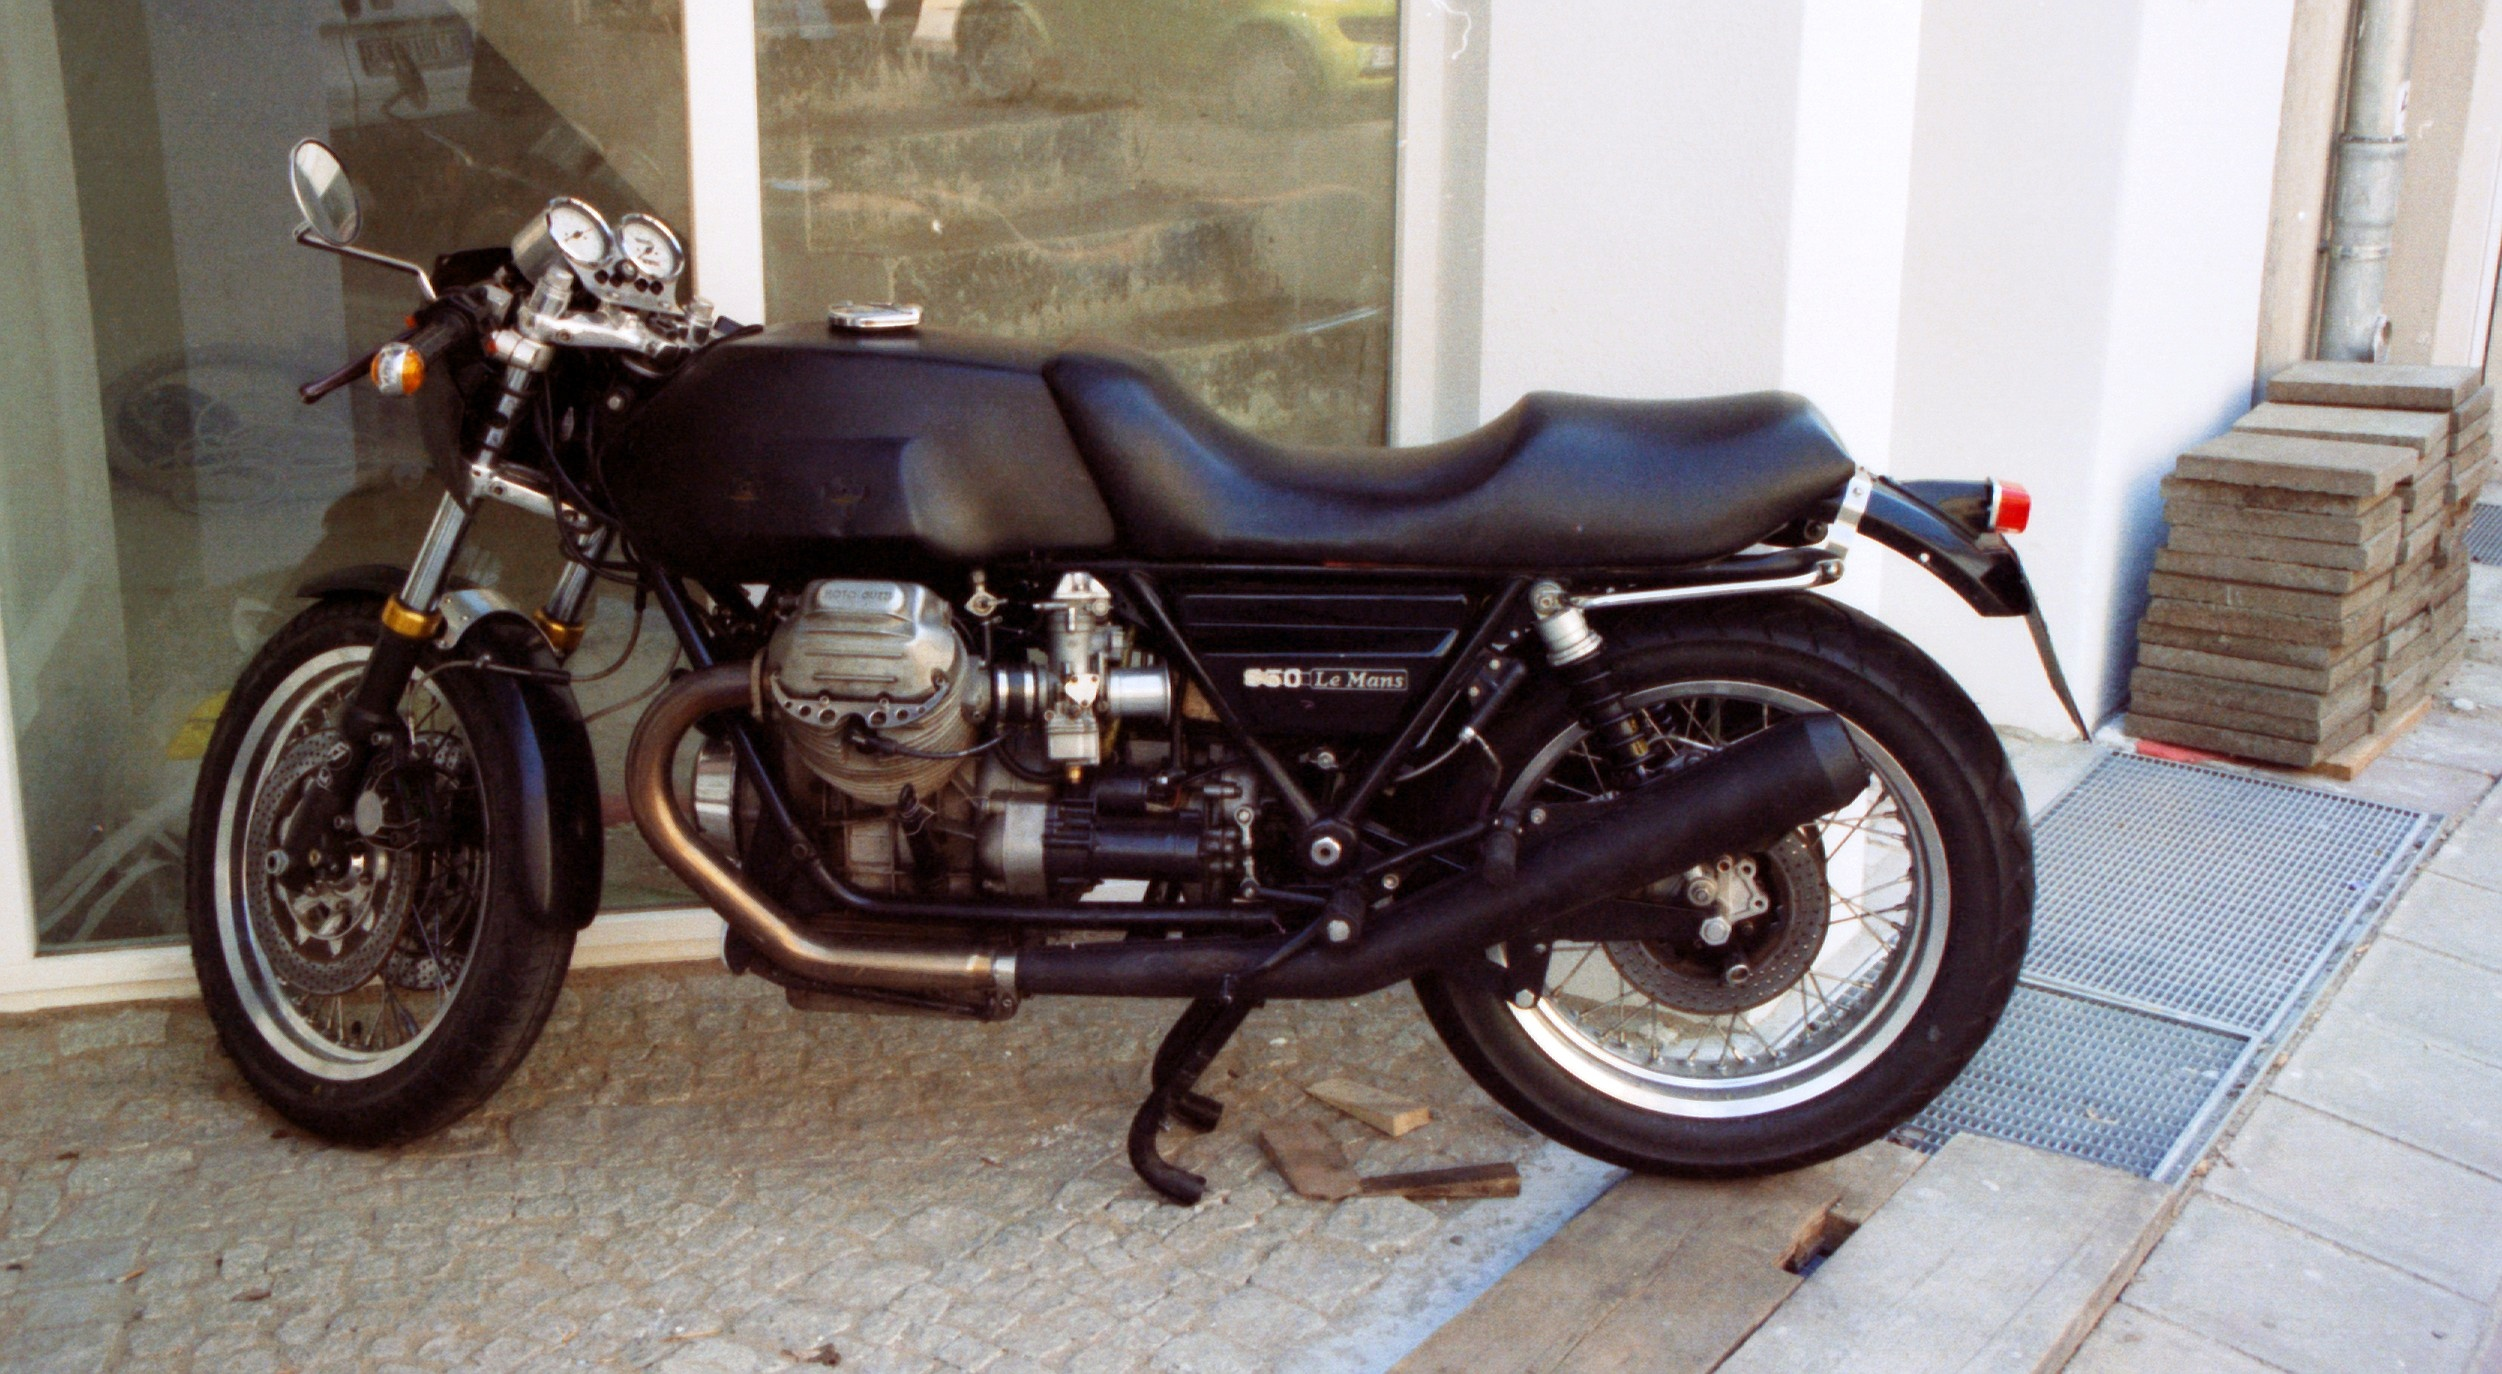 Moto Guzzi Quota 1100 ES 1998 images #145179